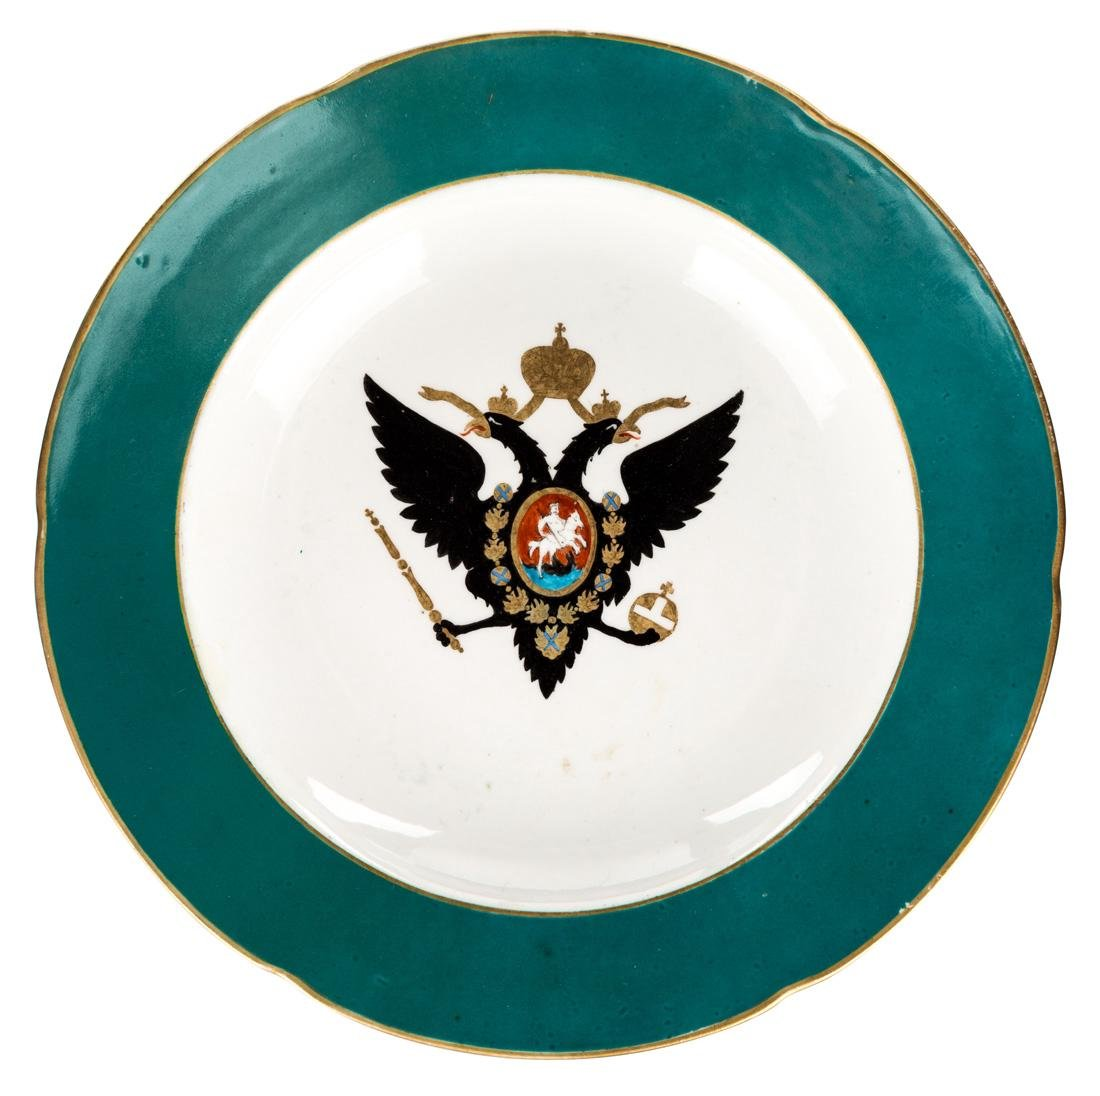 A RUSSIAN IMPERIAL PORCELAIN PLATE, RUSSIAN IMPERIAL